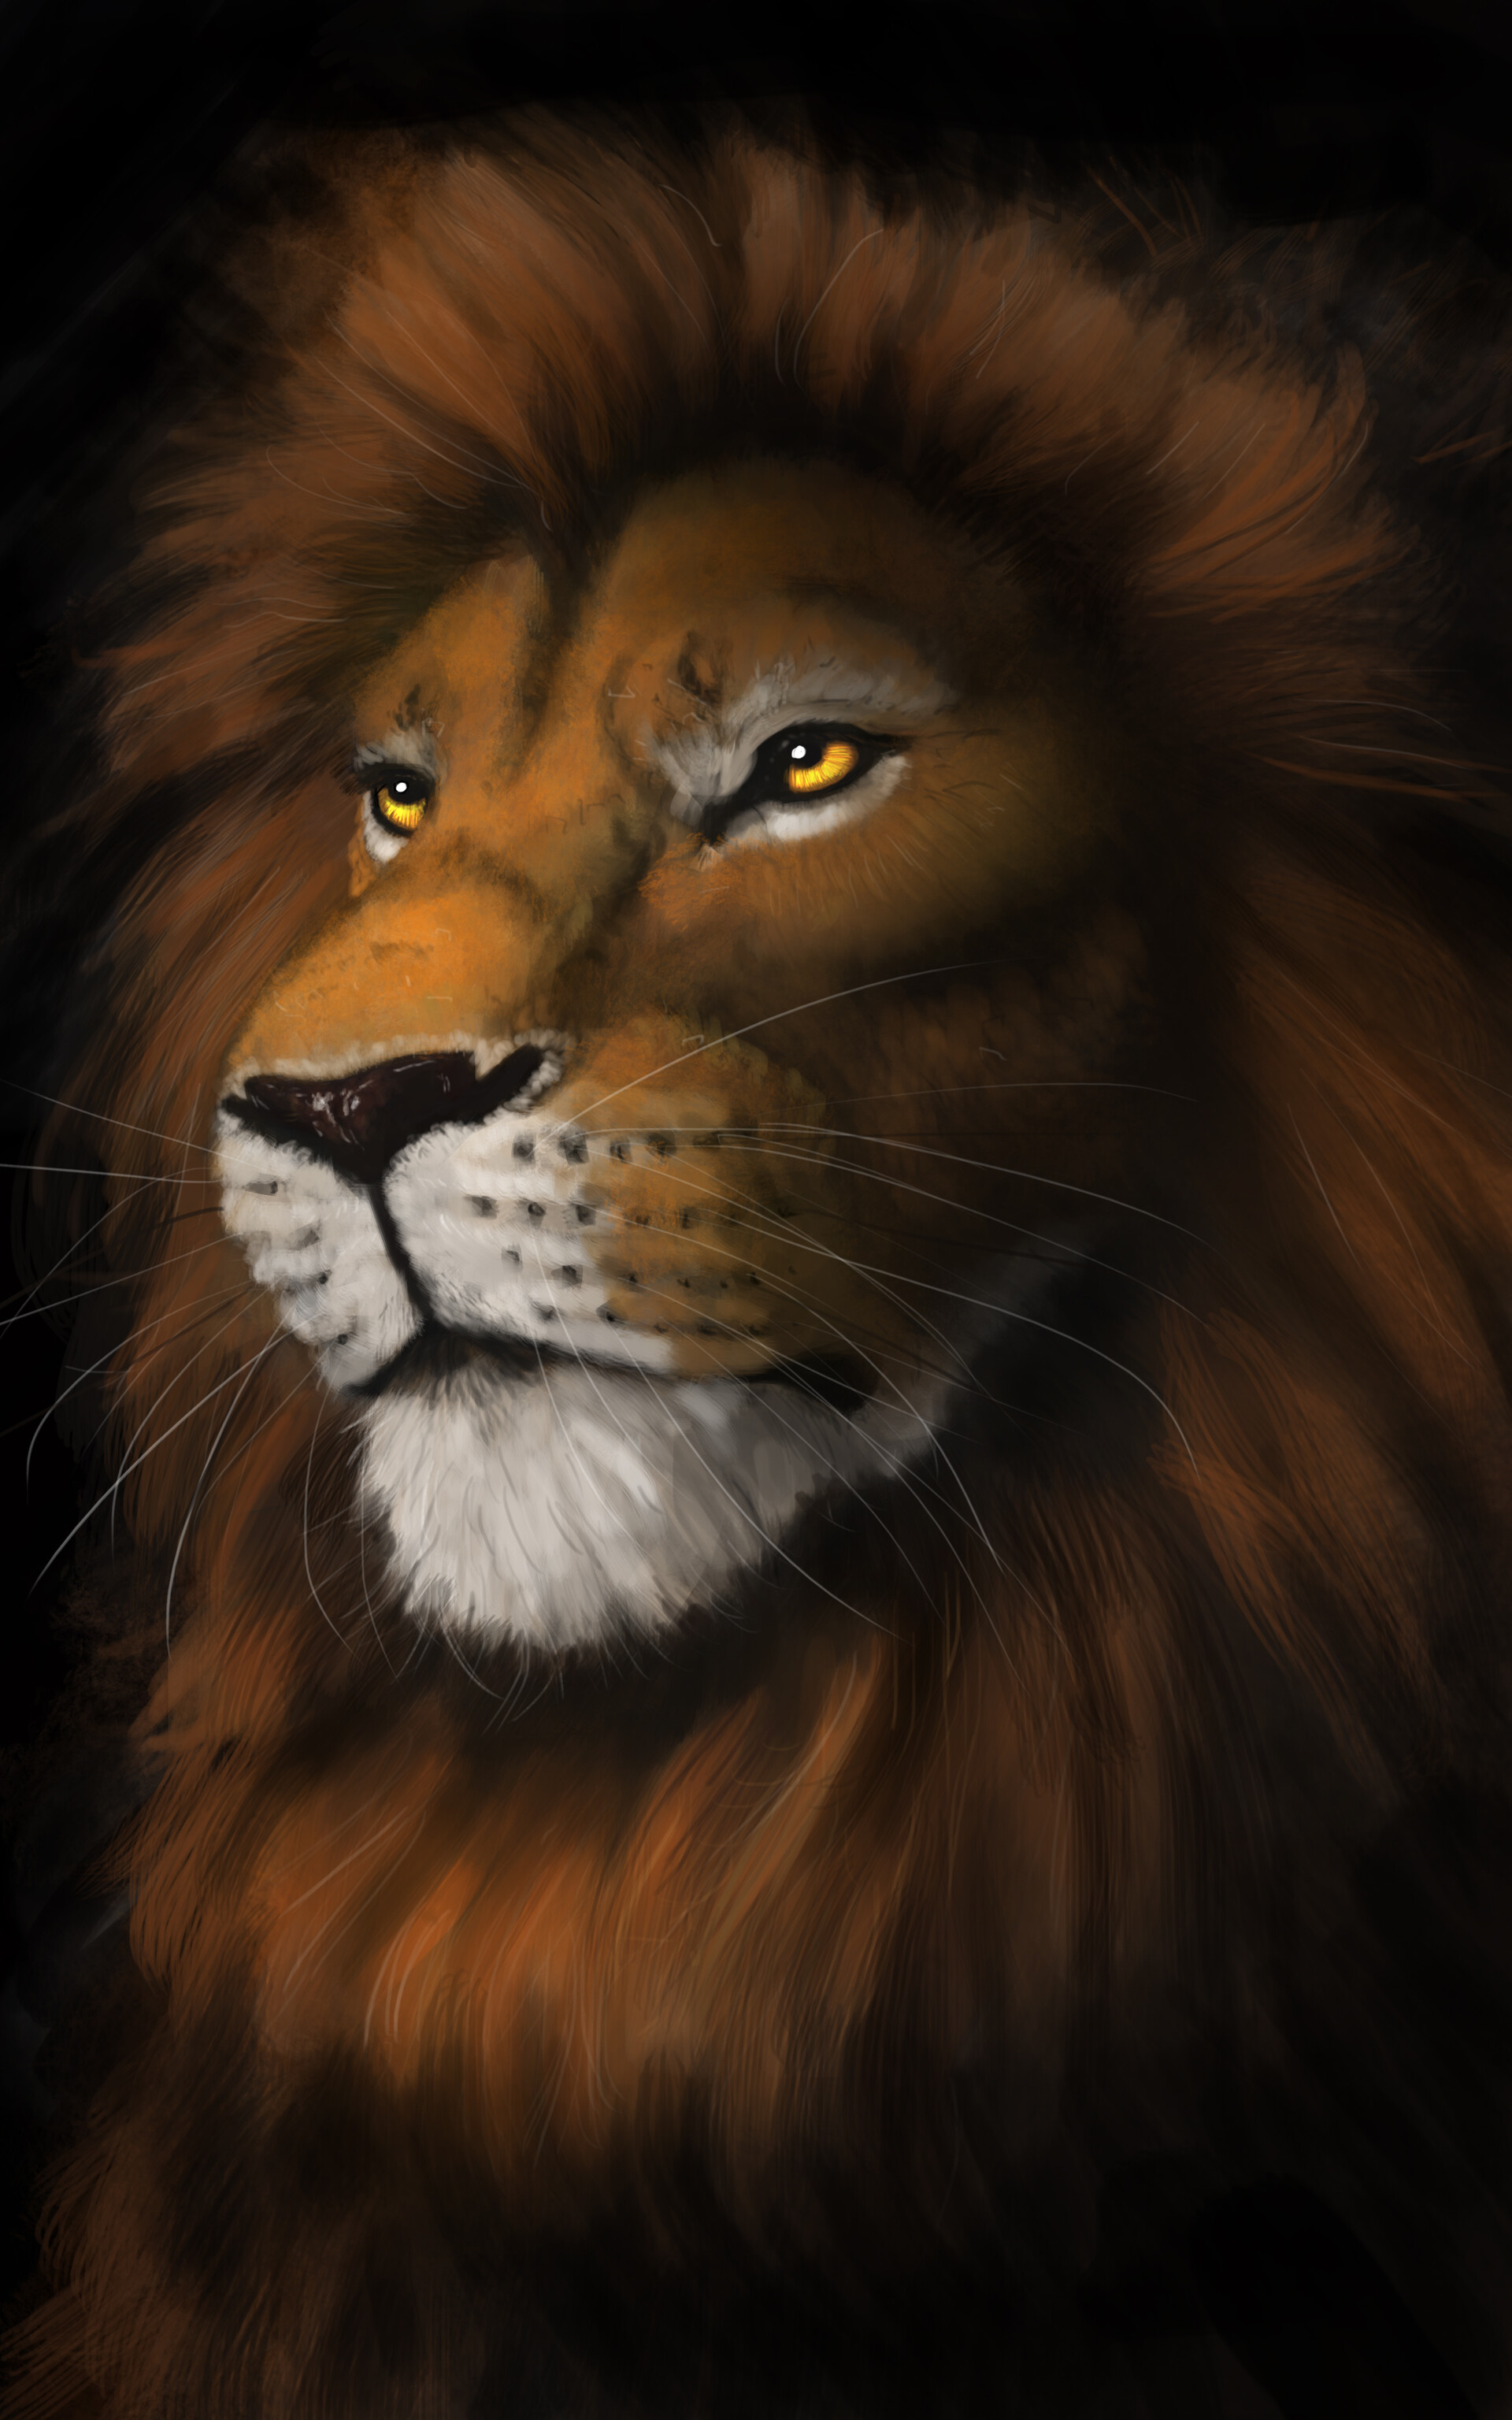 82379 download wallpaper Lion, Muzzle, Predator, Sight, Opinion, Art screensavers and pictures for free